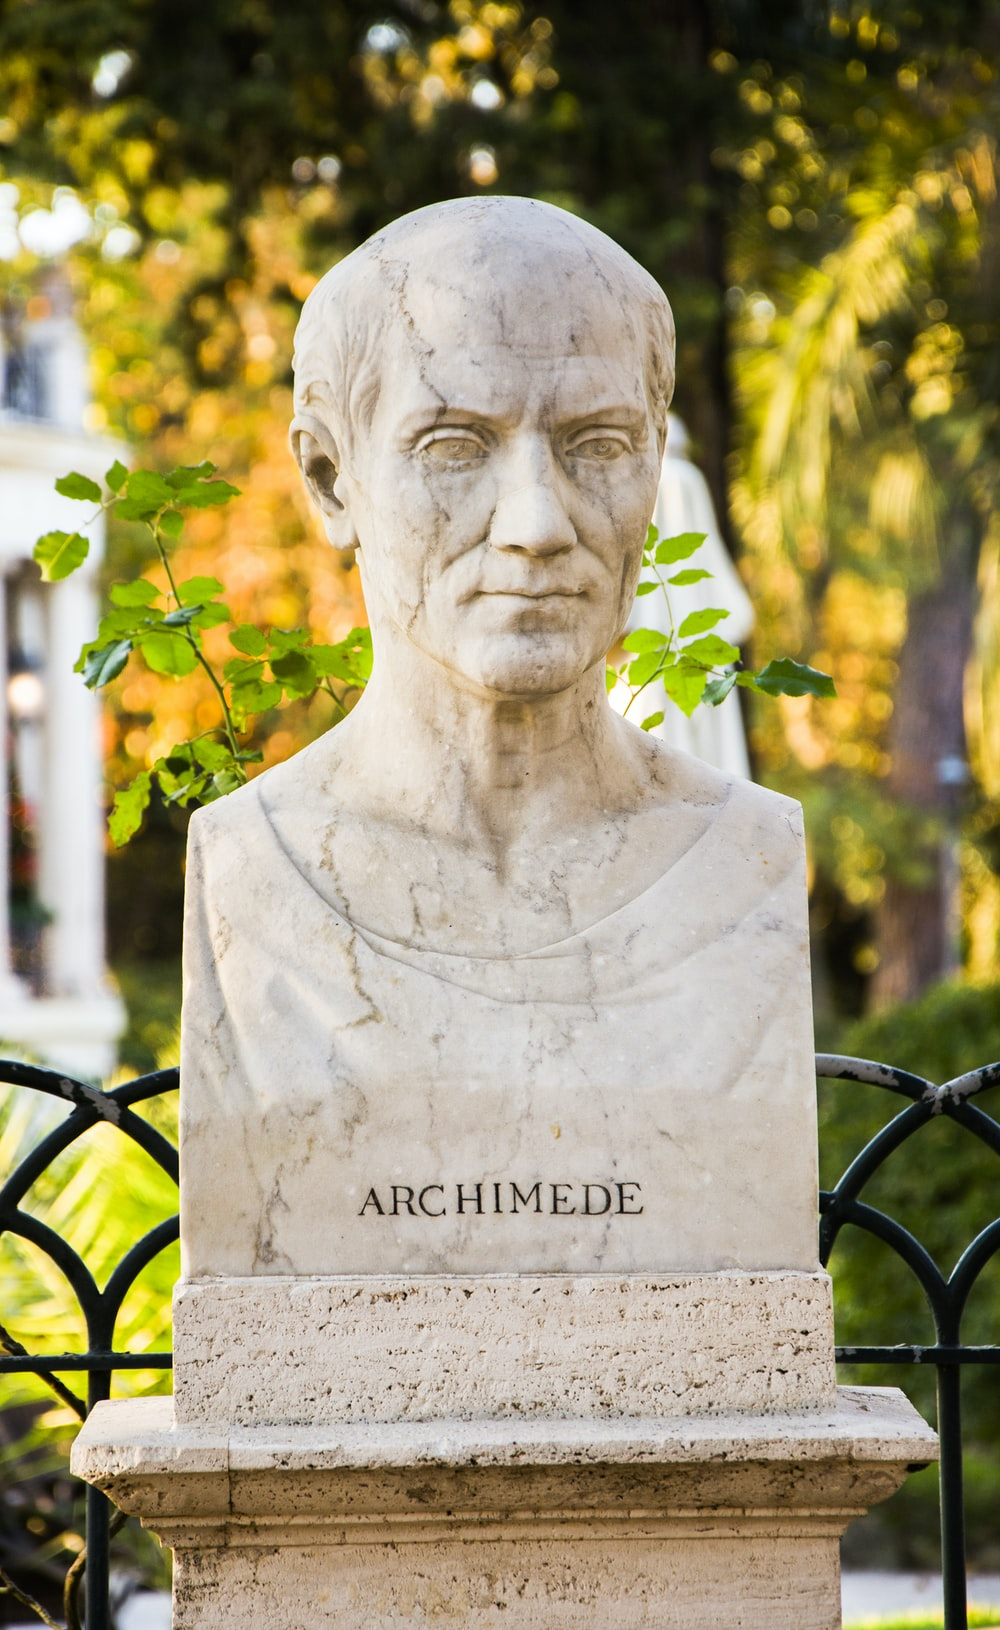 Archimede bust